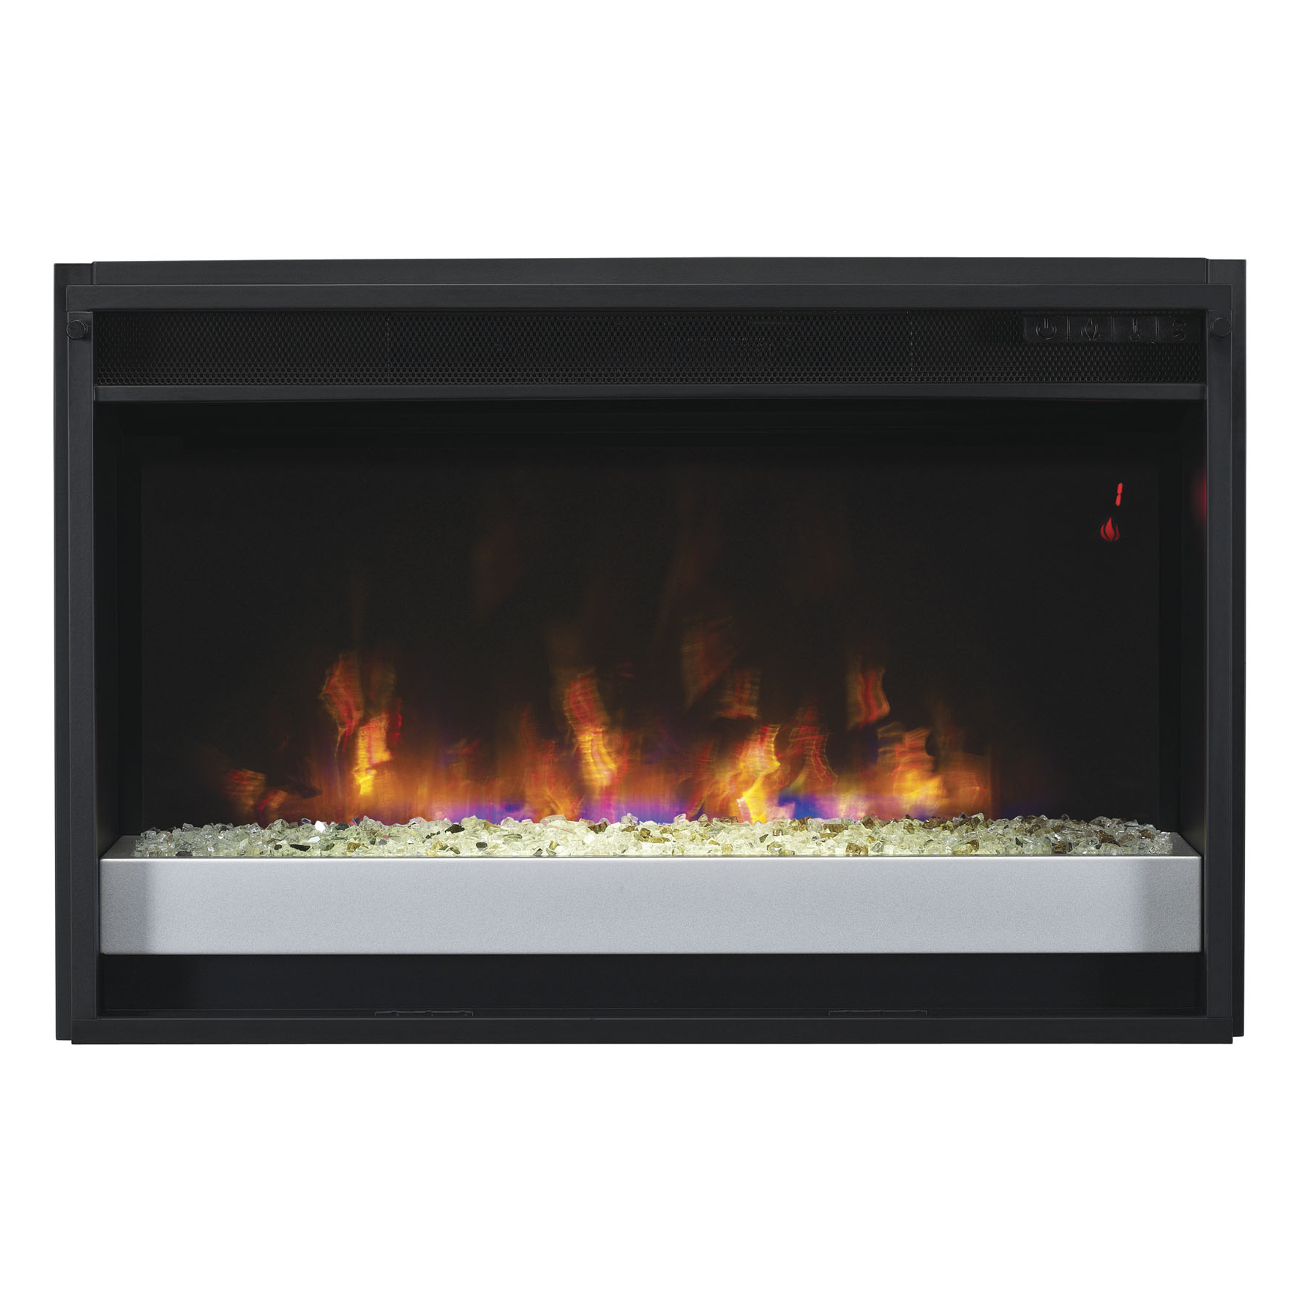 Classic Flame Electric Fireplace Insert 26EF031GPG-201